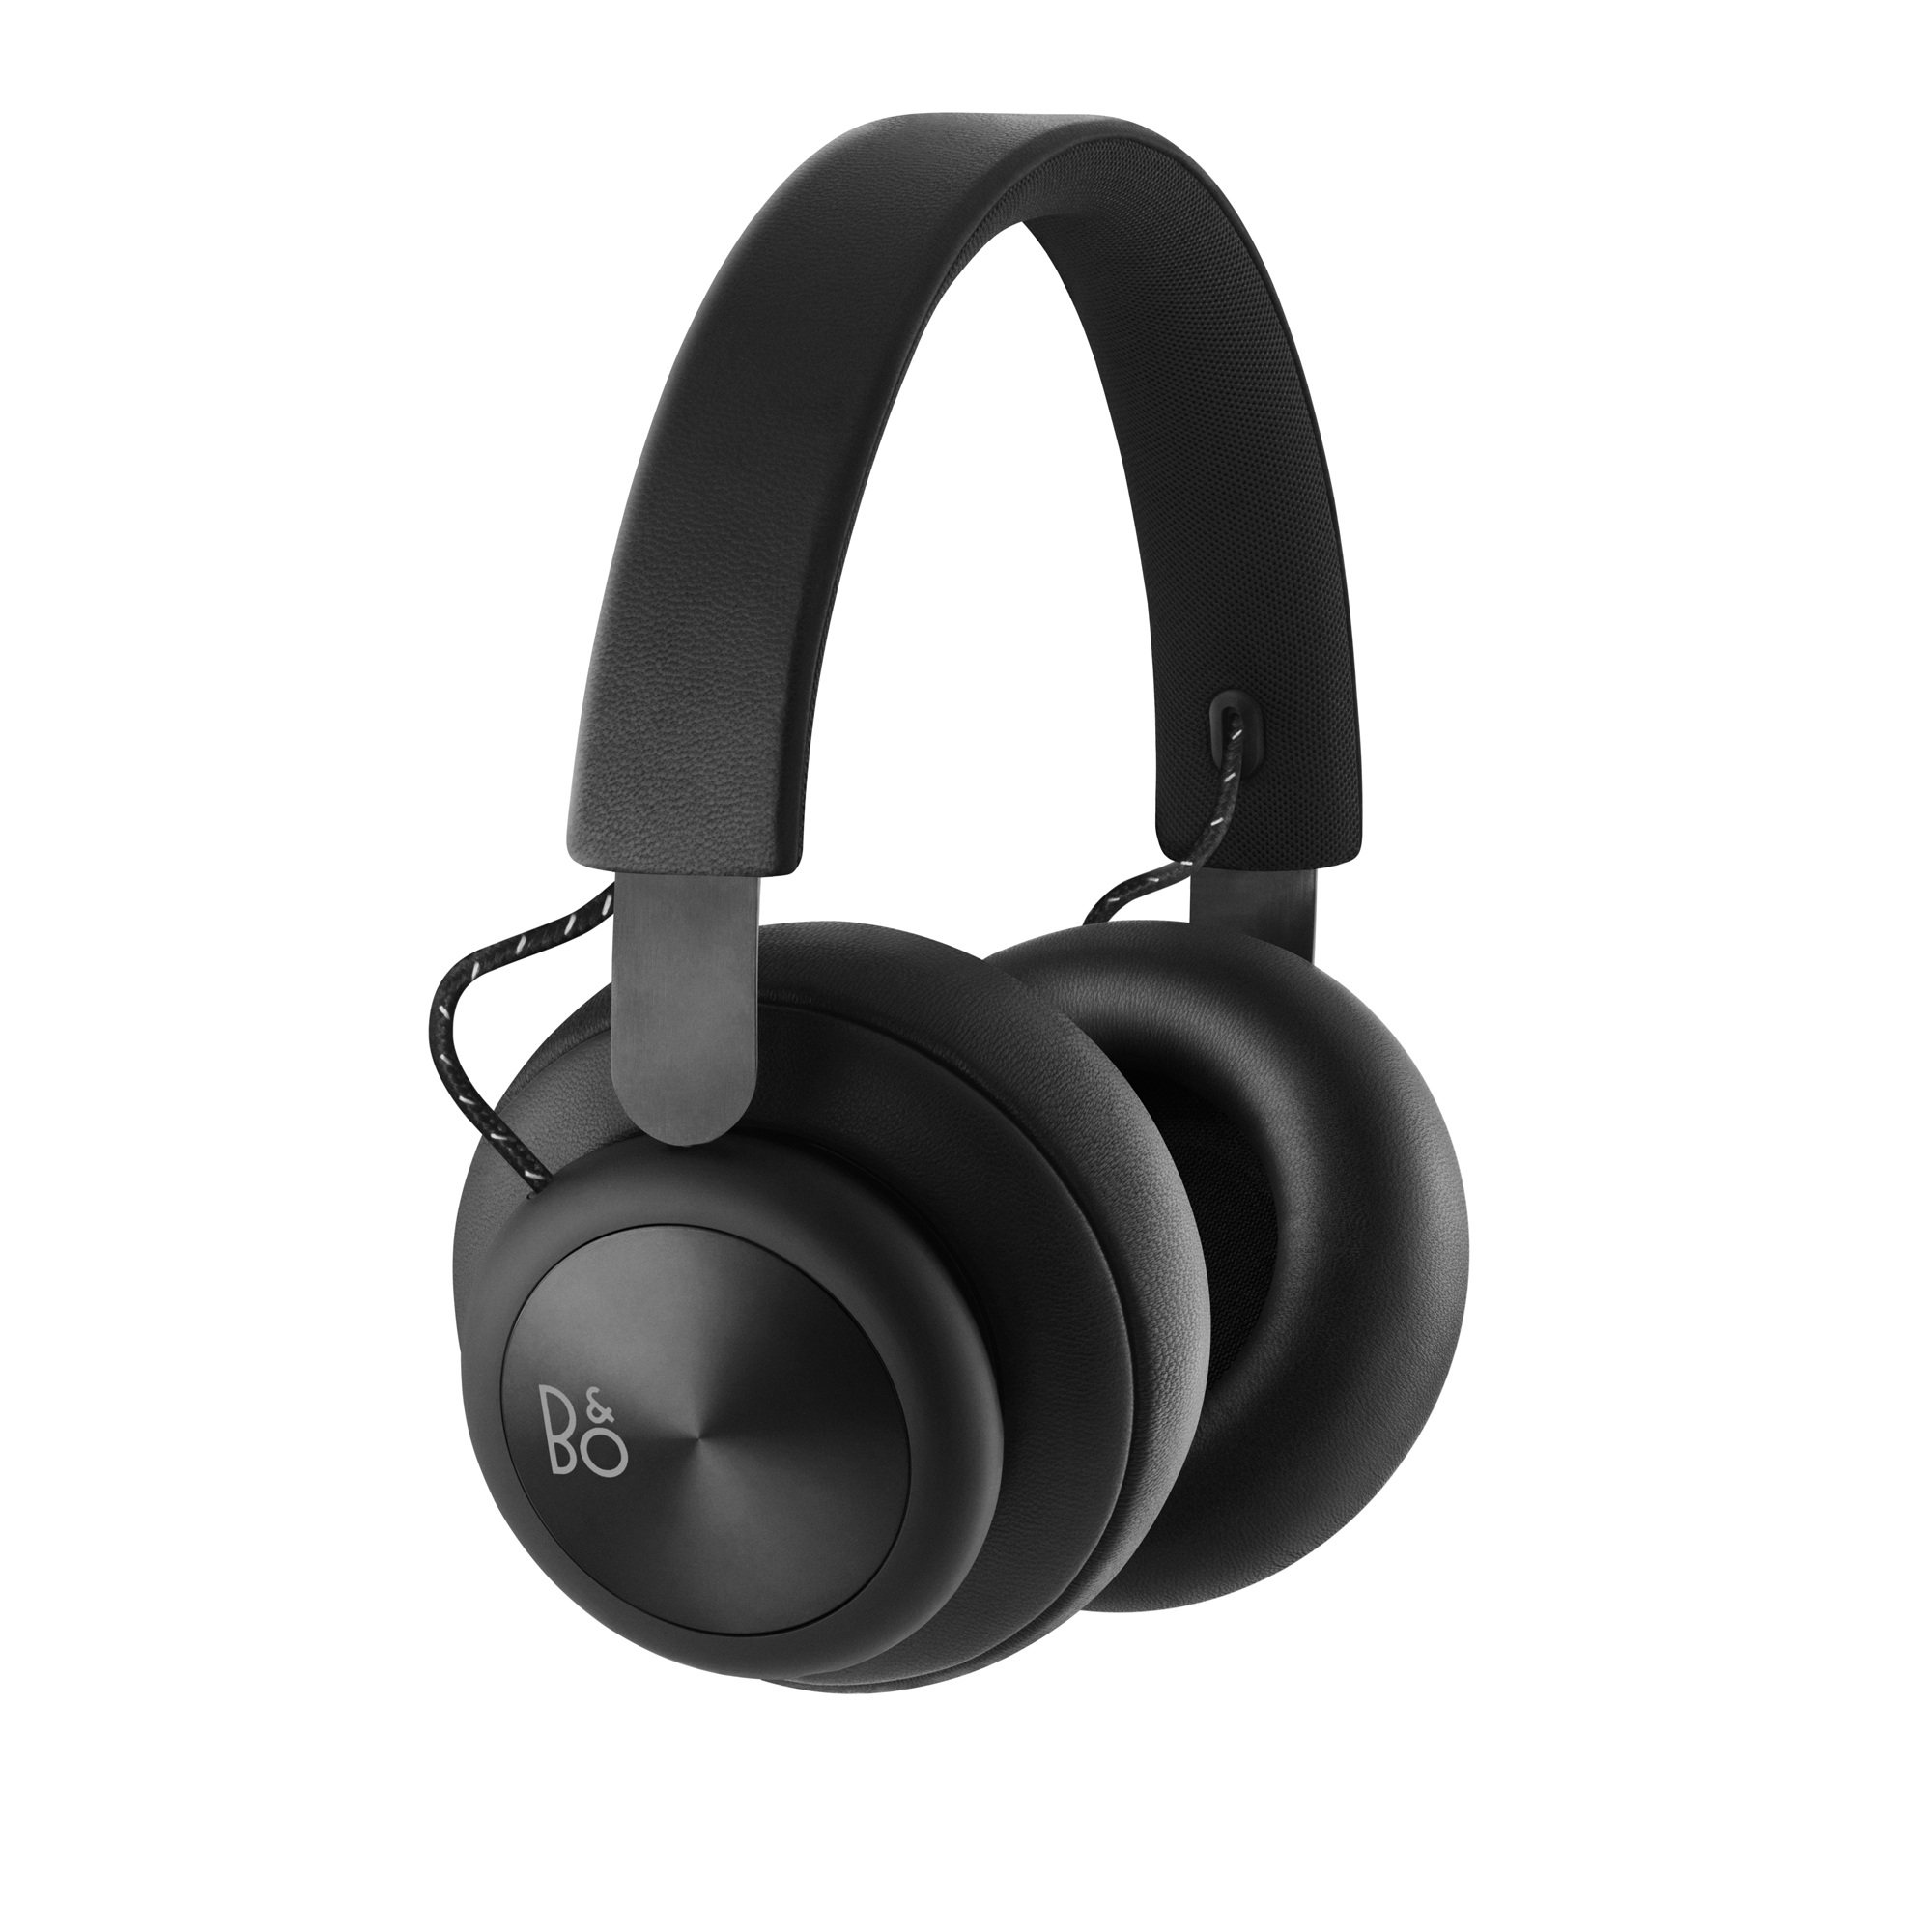 B&O Play รุ่น BeoPlay H4 Black